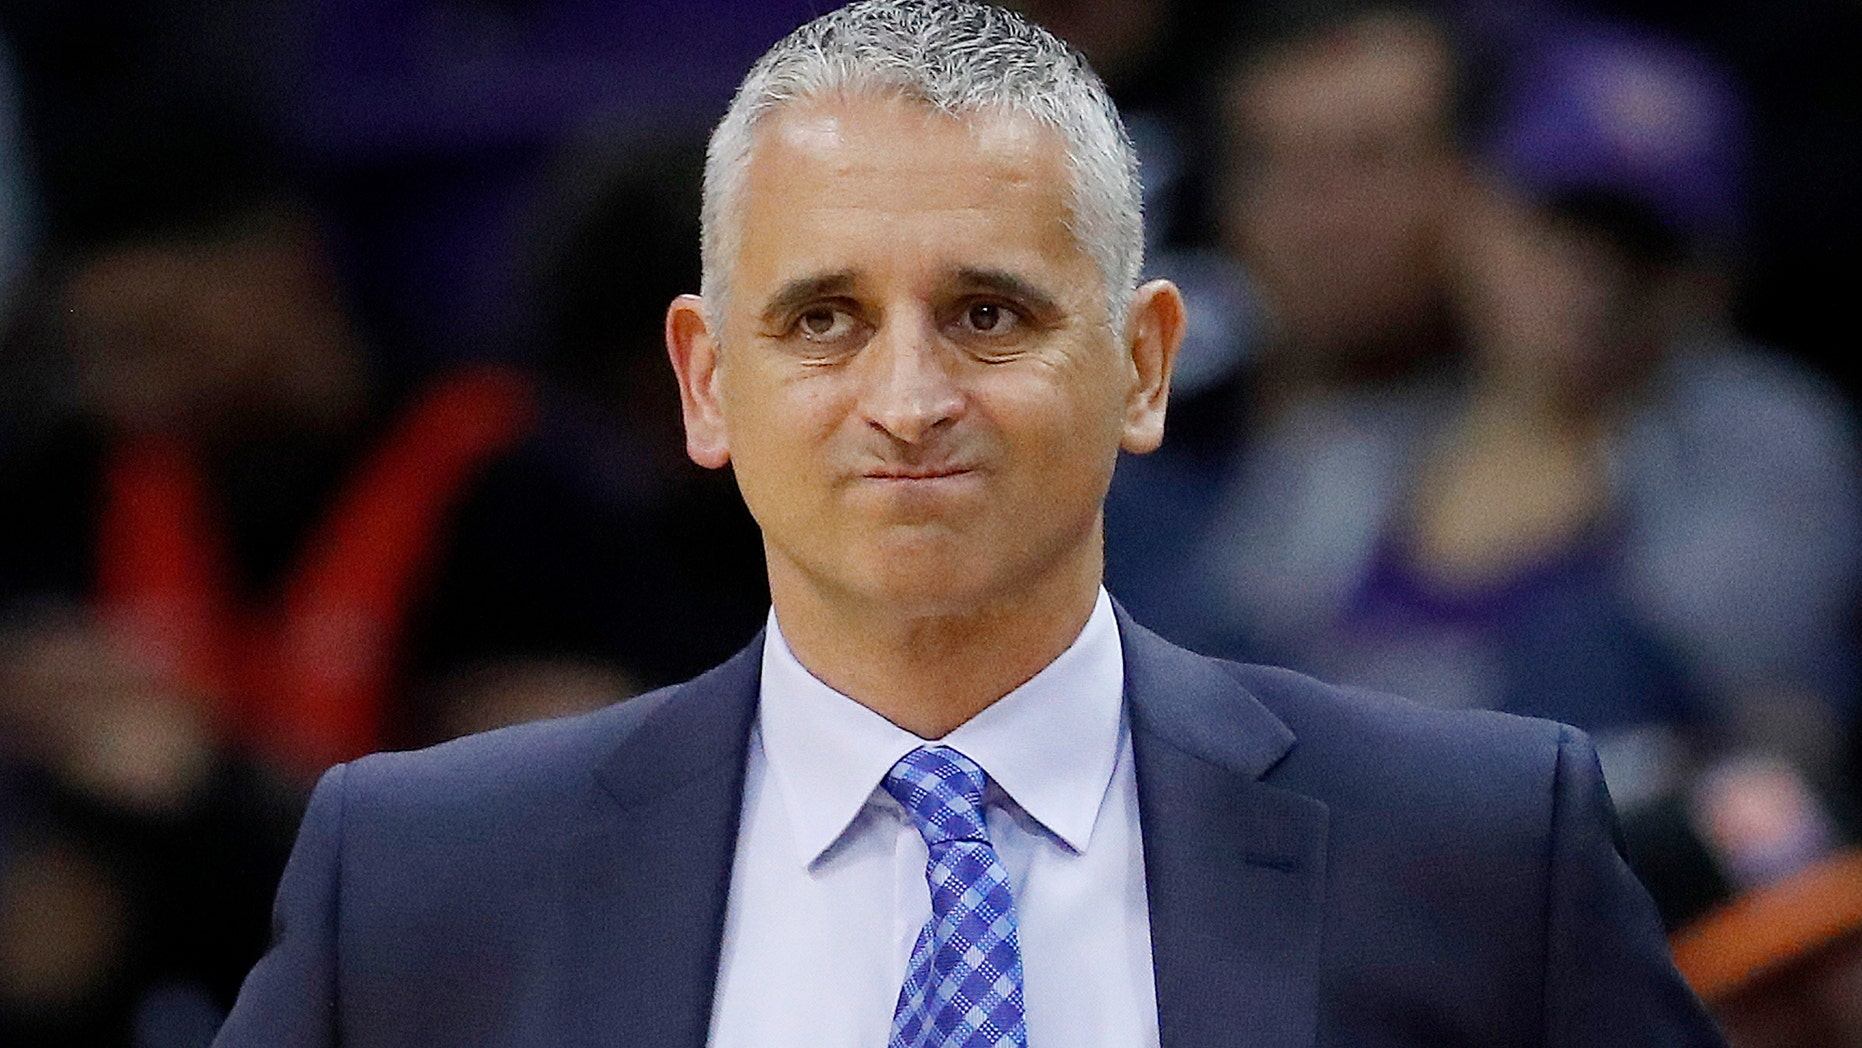 Westlake Legal Group NBA-Igor-Kokoskov Suns fire Igor Kokoskov after 1 losing season fox-news/sports/nba/phoenix-suns fox-news/sports/nba fnc/sports fnc ee70d99f-cad1-553d-9fb4-53e874144333 Associated Press article